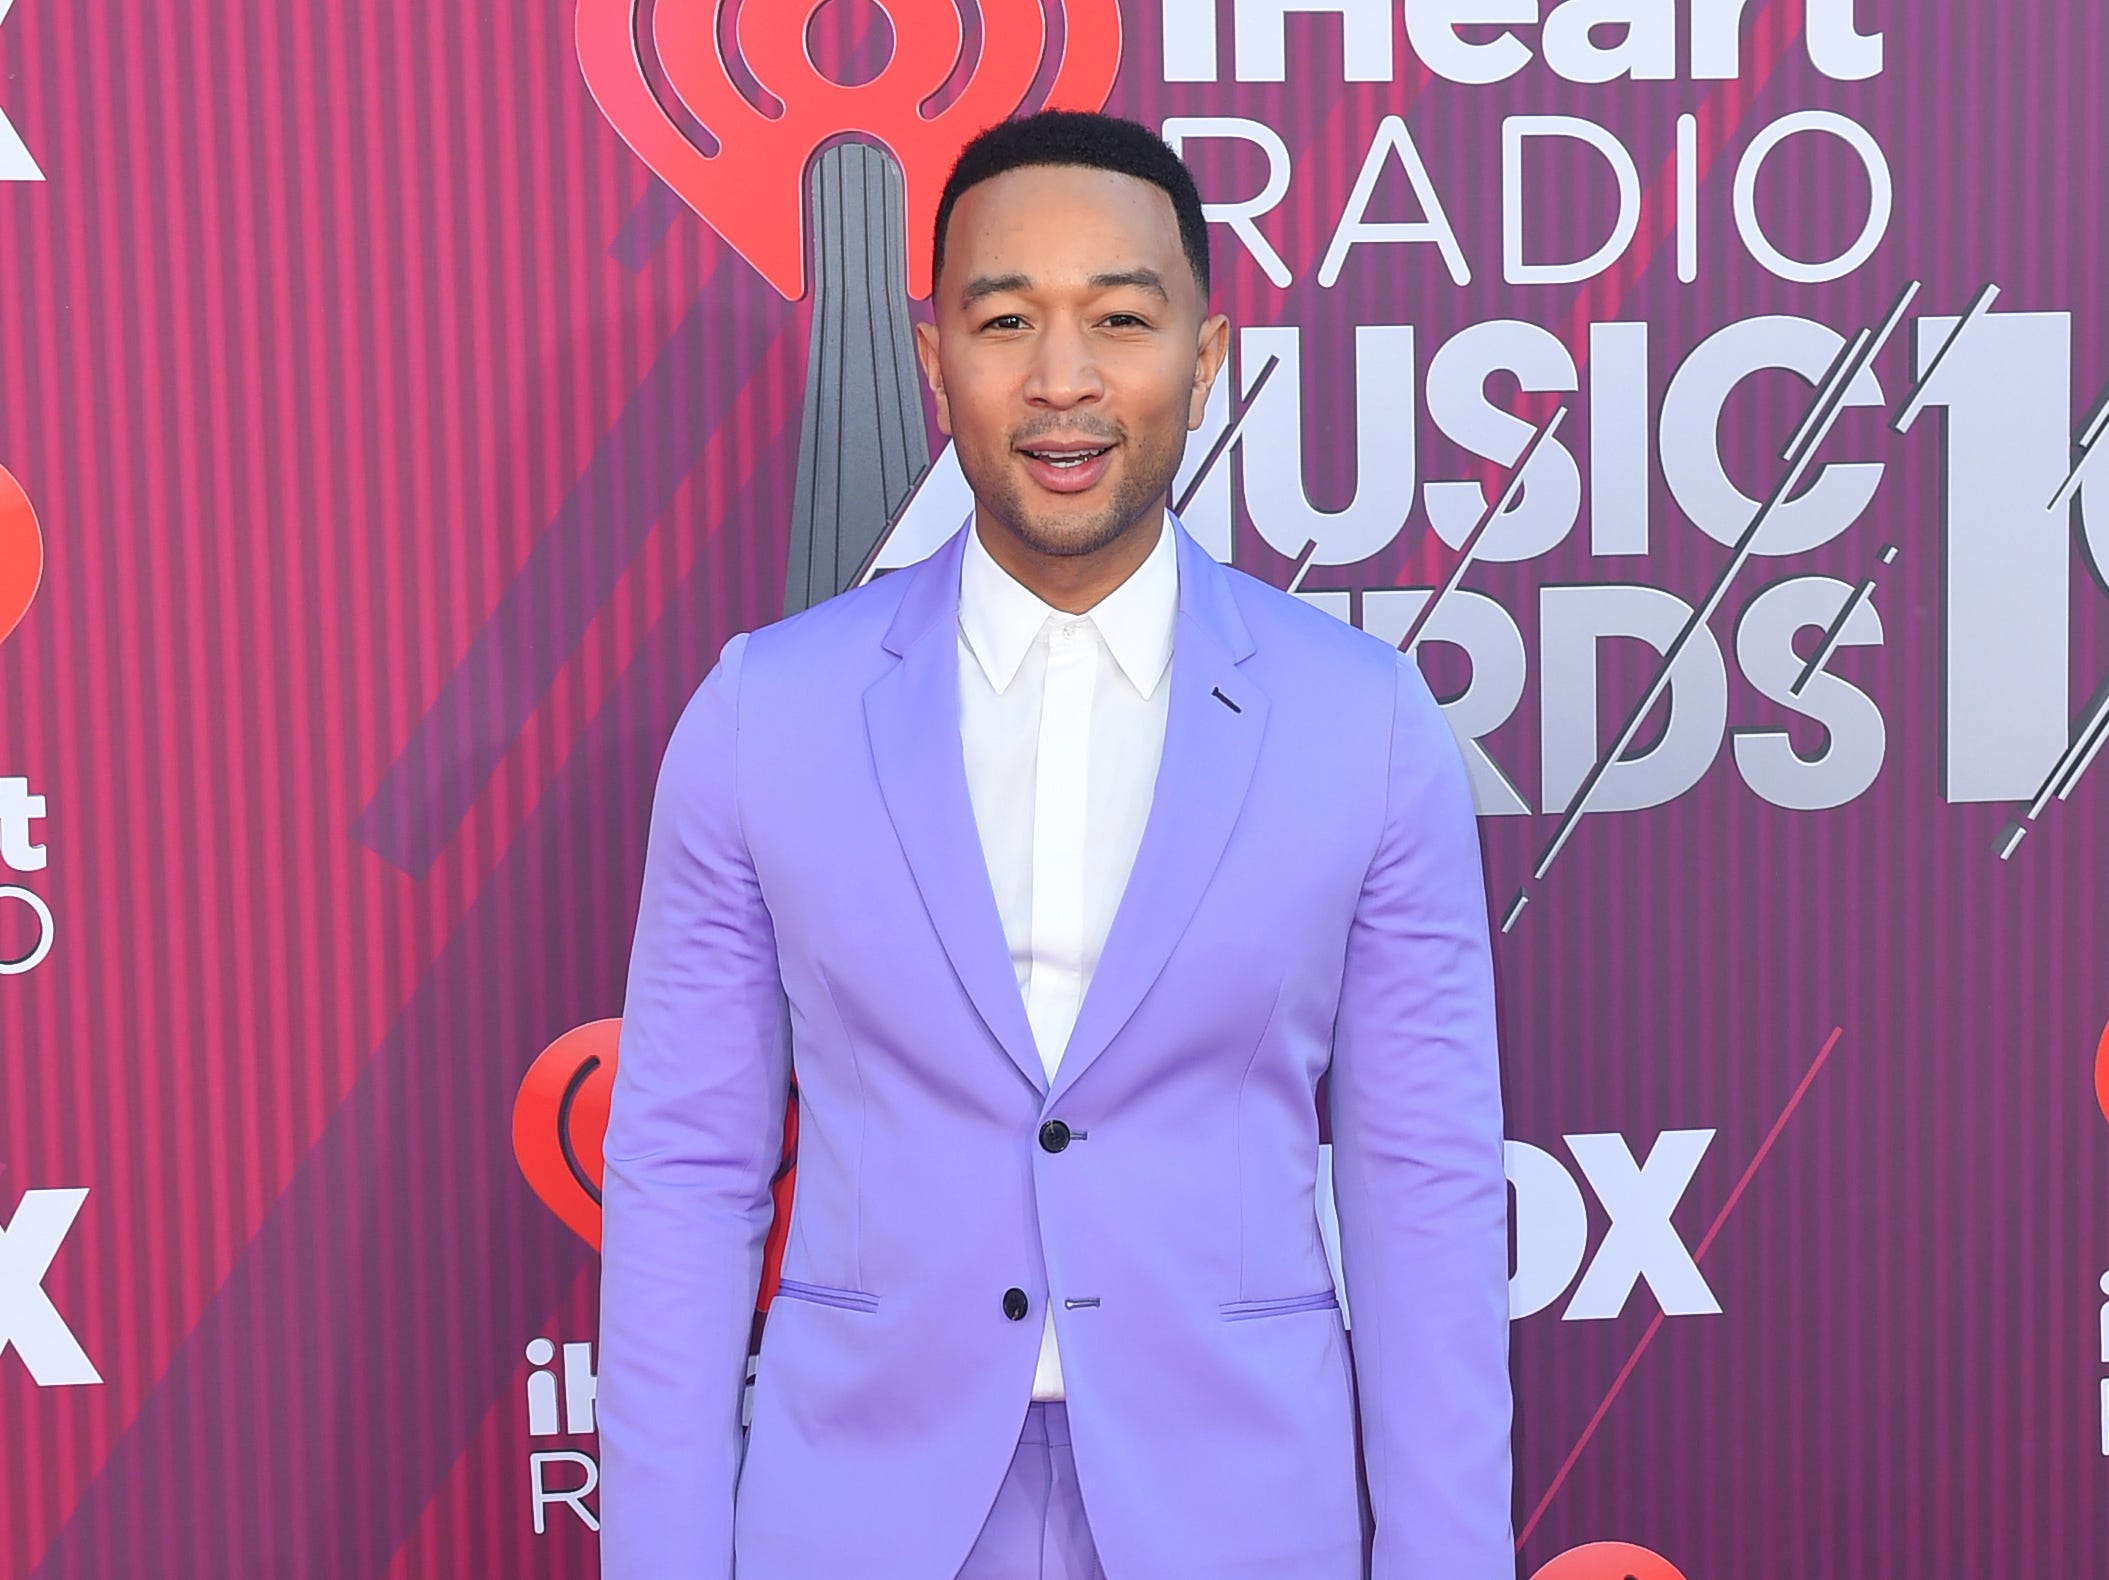 John Legend arrives at the iHeartRadio Music Awards.